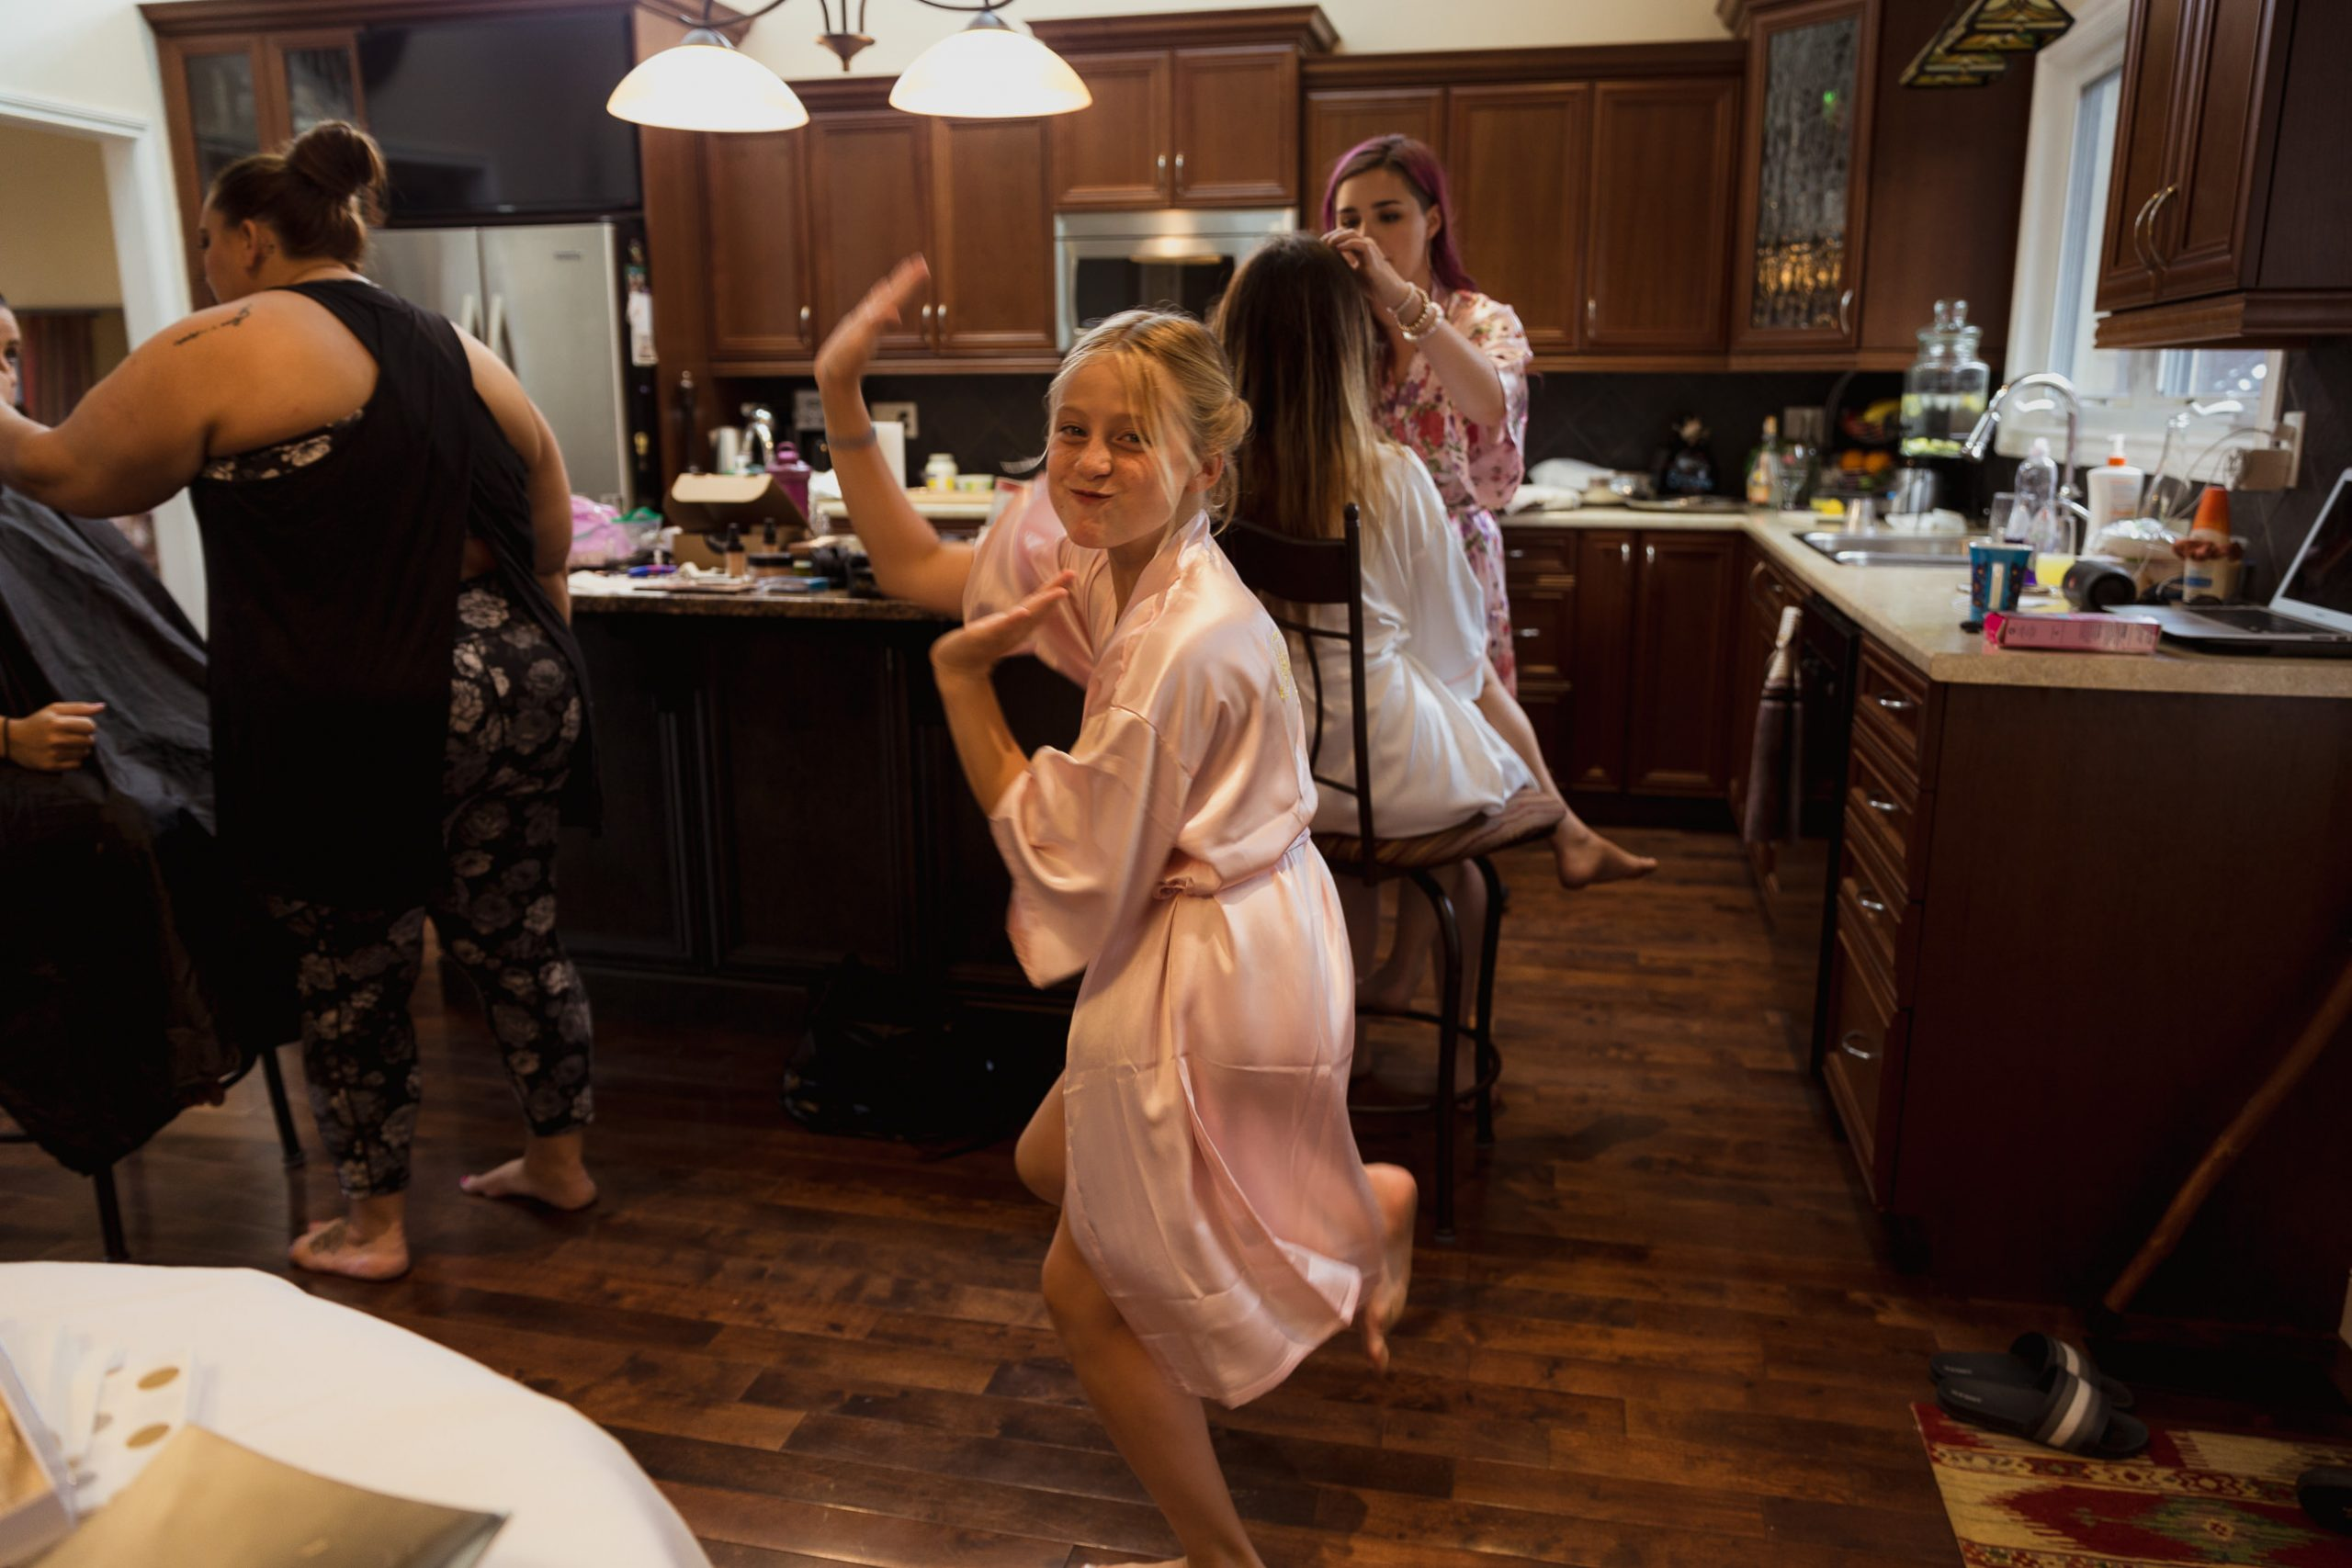 Wedding photos girls getting ready flower girl dancing in the kitchen in her bridesmaid robe